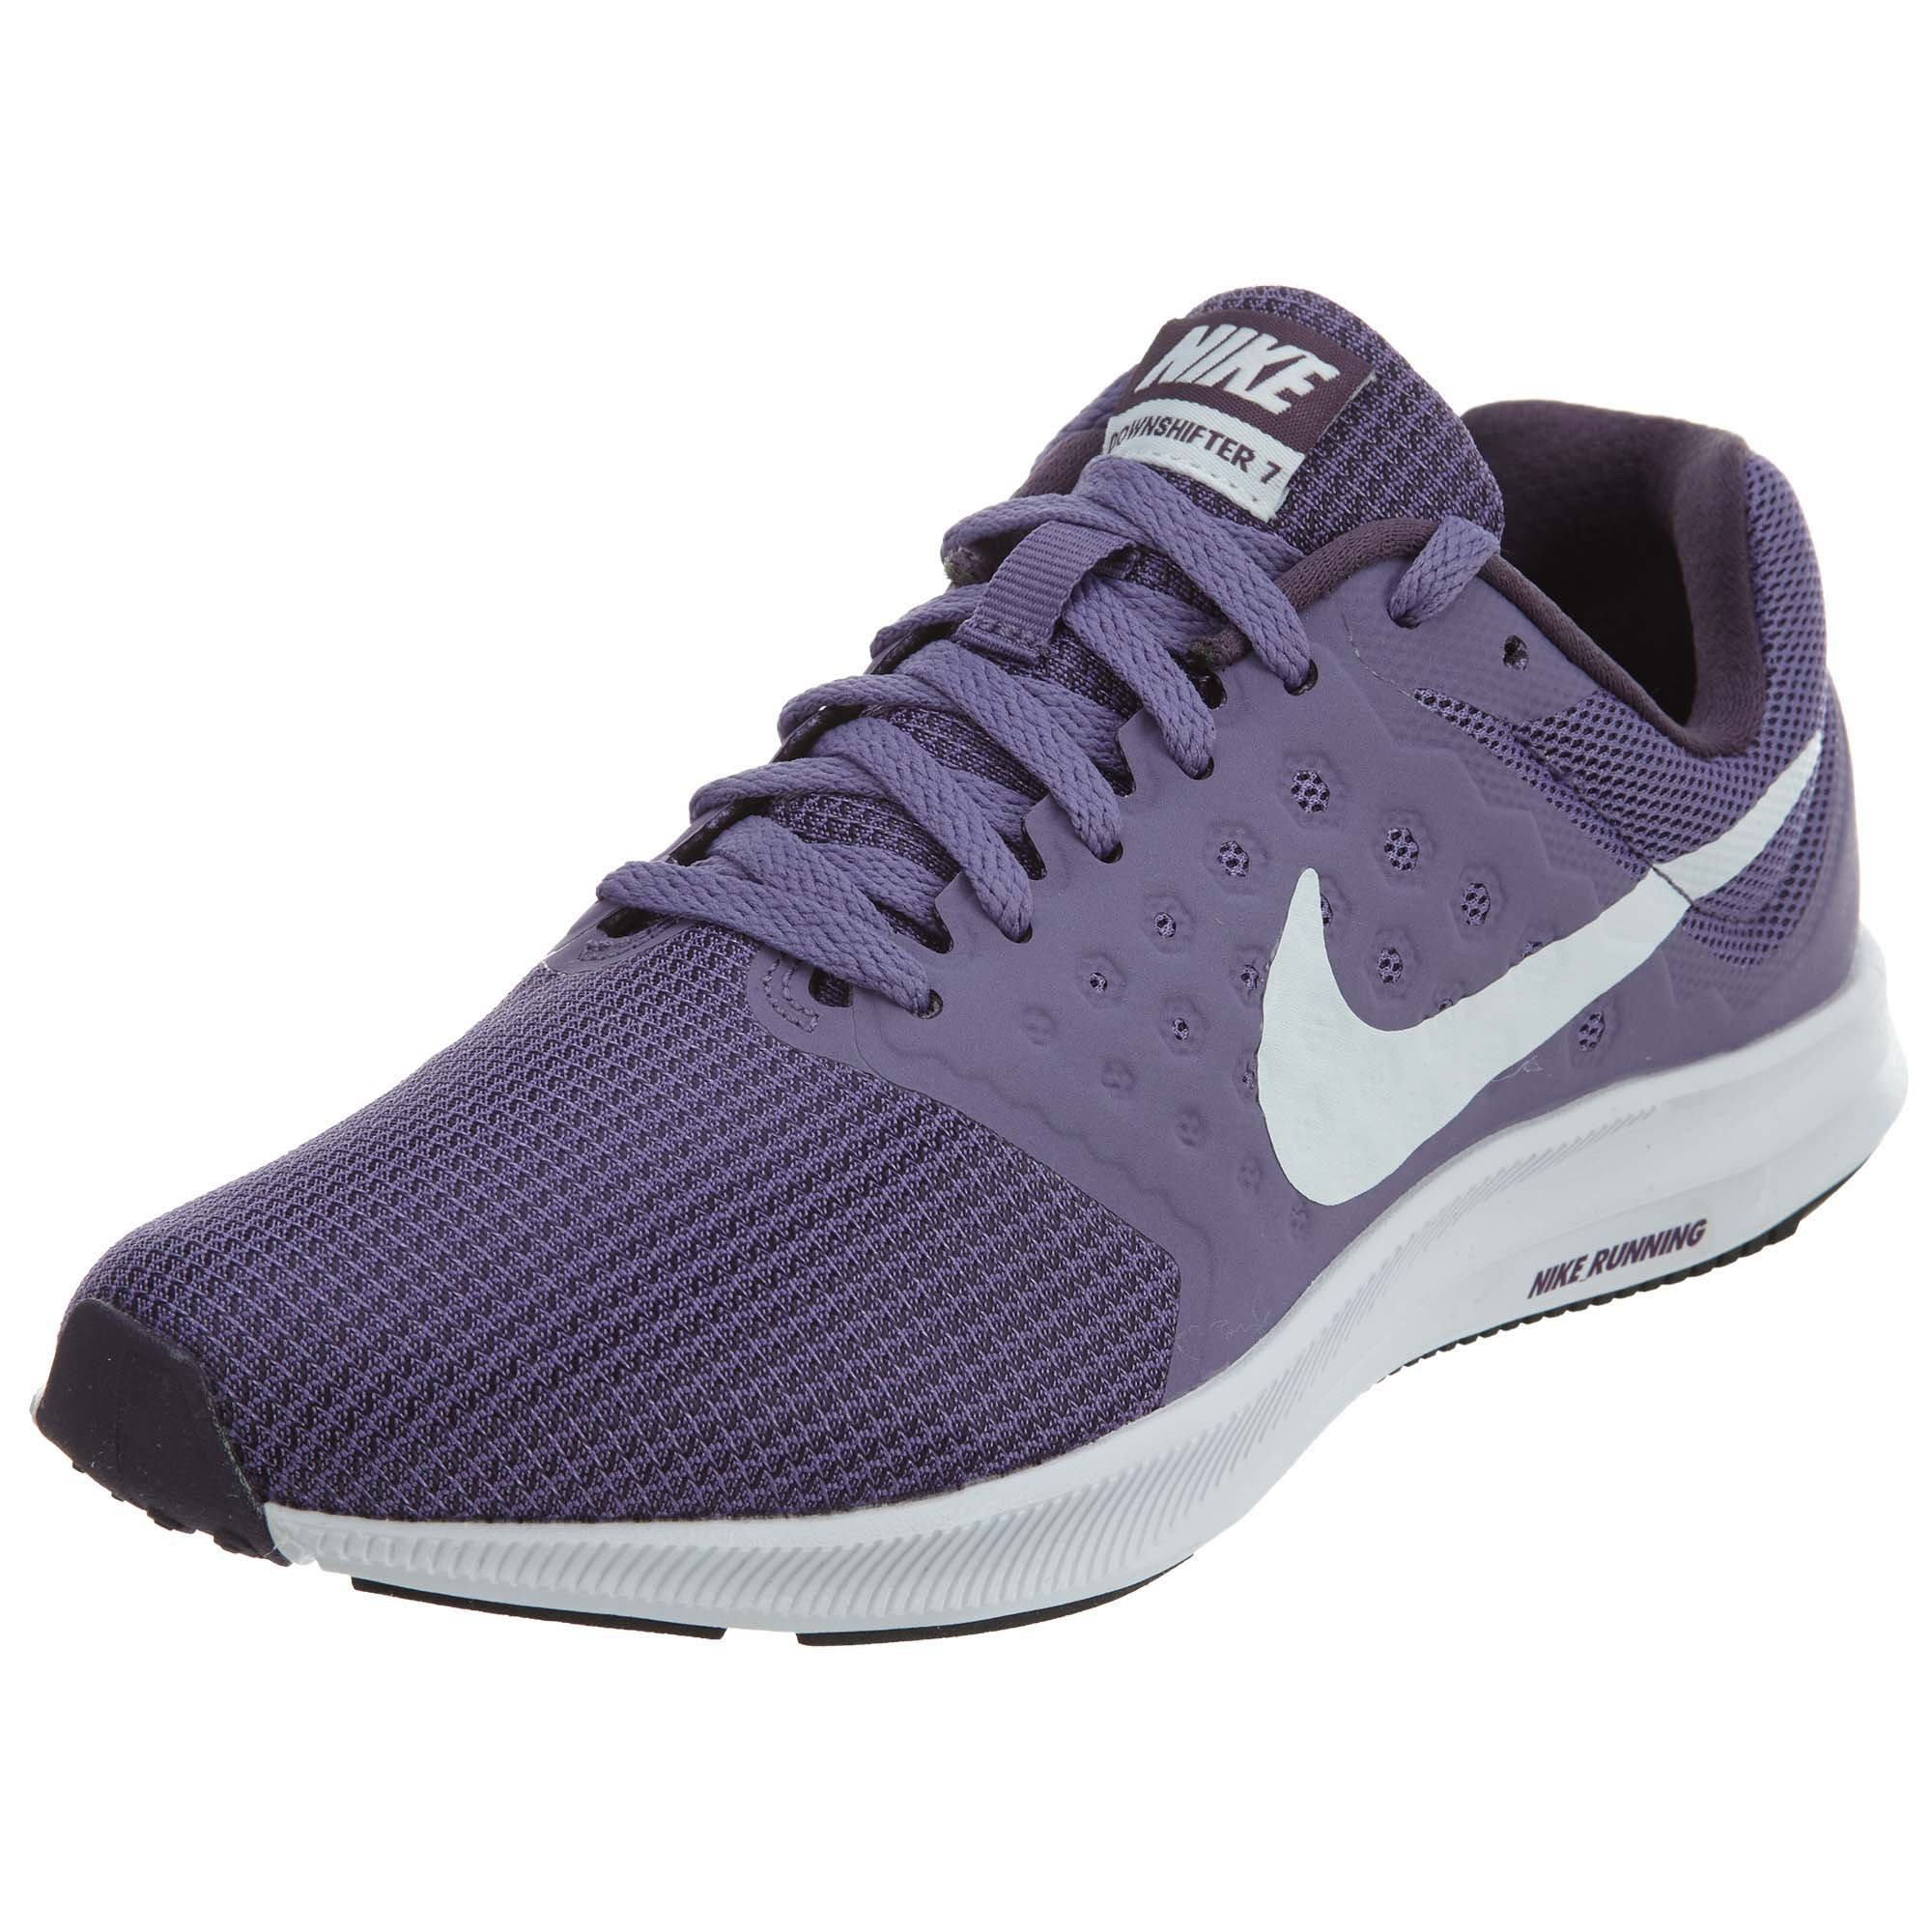 e43fdf611389e Galleon - Nike Women s Downshifter 7 Running Shoe Purple Earth White Dark  Raisin Black Size 9 M US